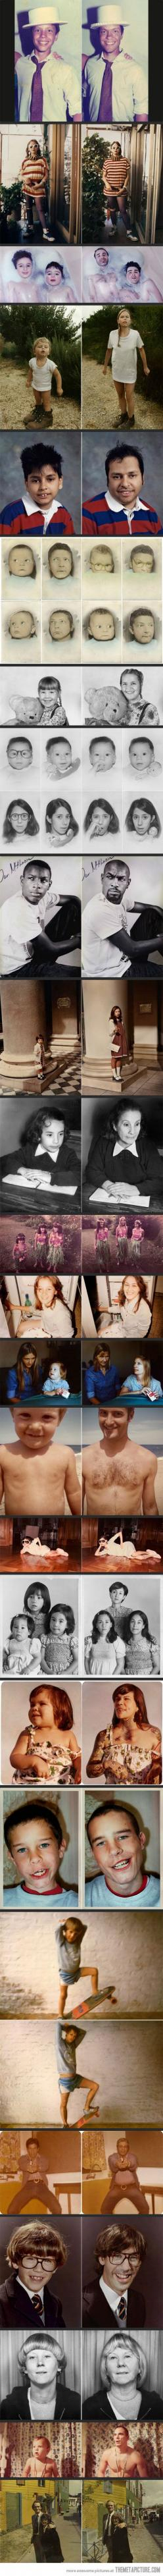 Then and Now Photos. great gift for parents - these kill me: Picture, Photos, Idea, Then And Now, Photo Recreation, Funny, Great Gifts, Photography